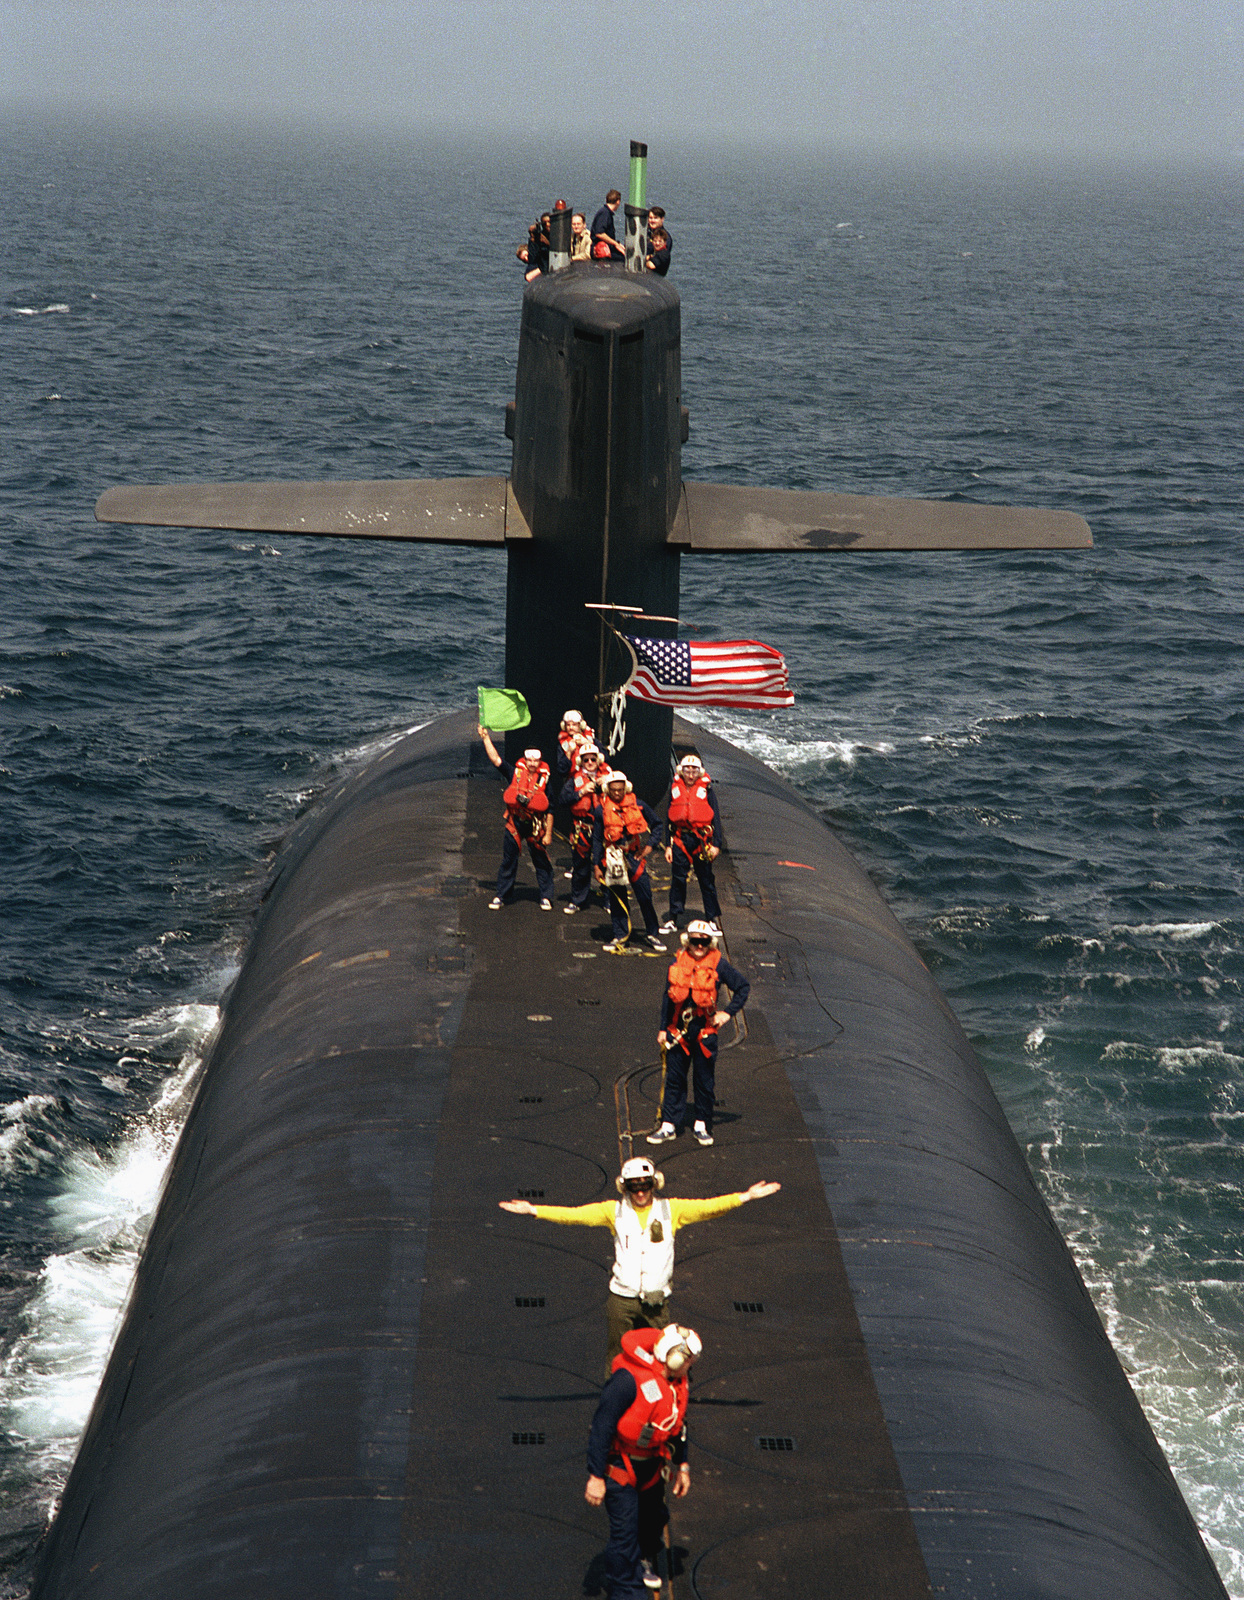 US Navy (USN) personnel on the deck of the USN Ohio Class